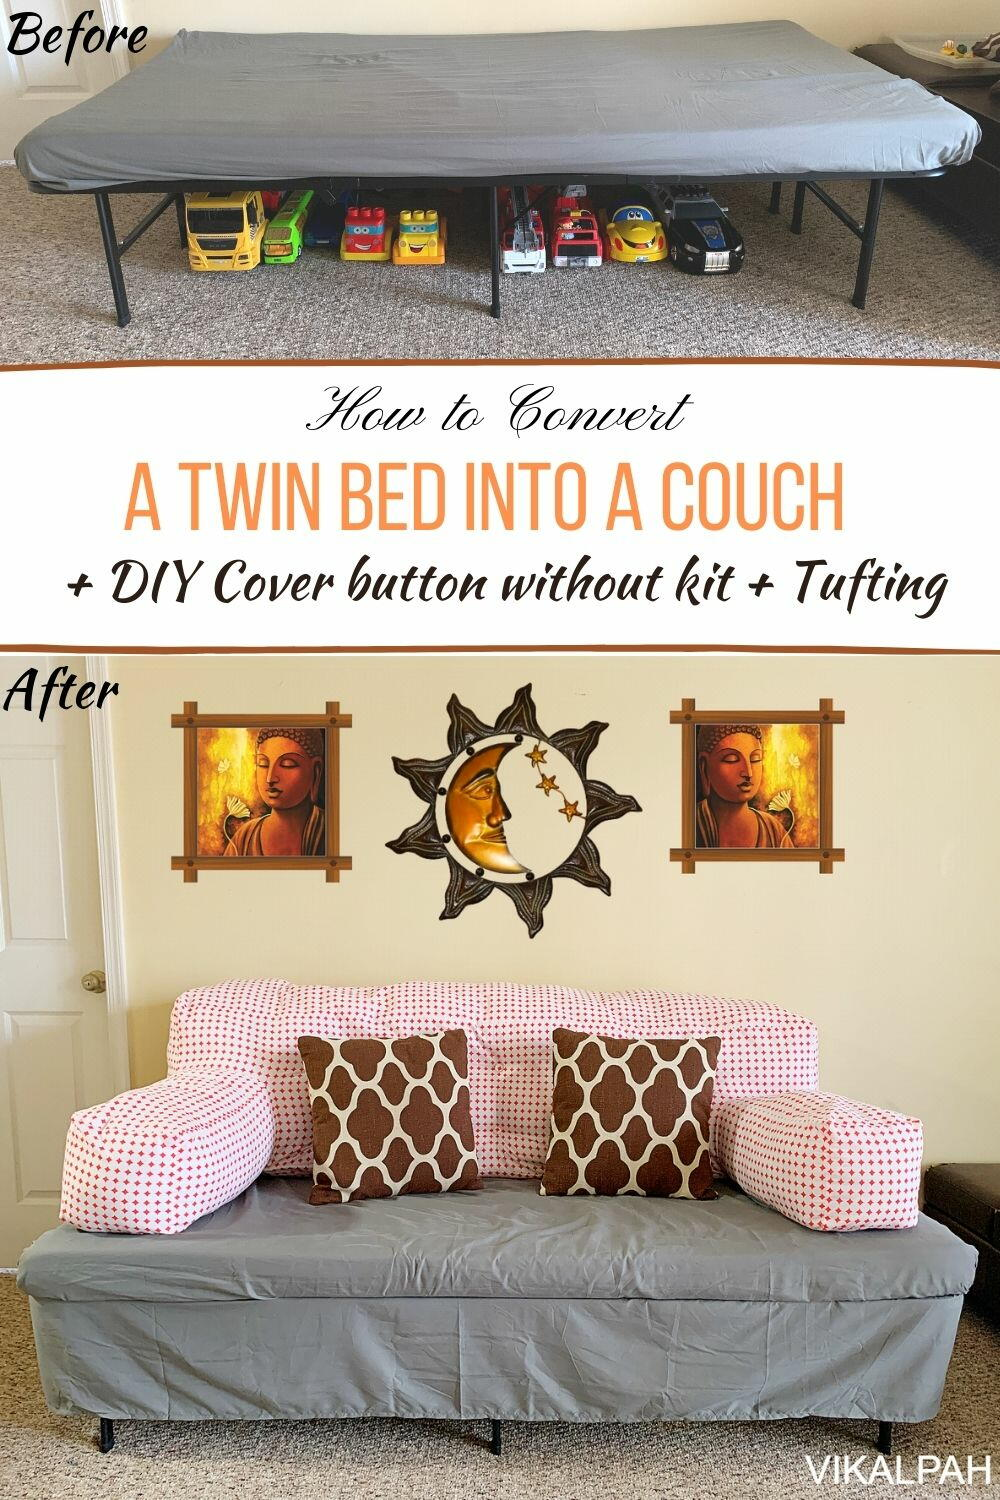 How To Convert A Twin Bed Into A Couch Favecrafts Com